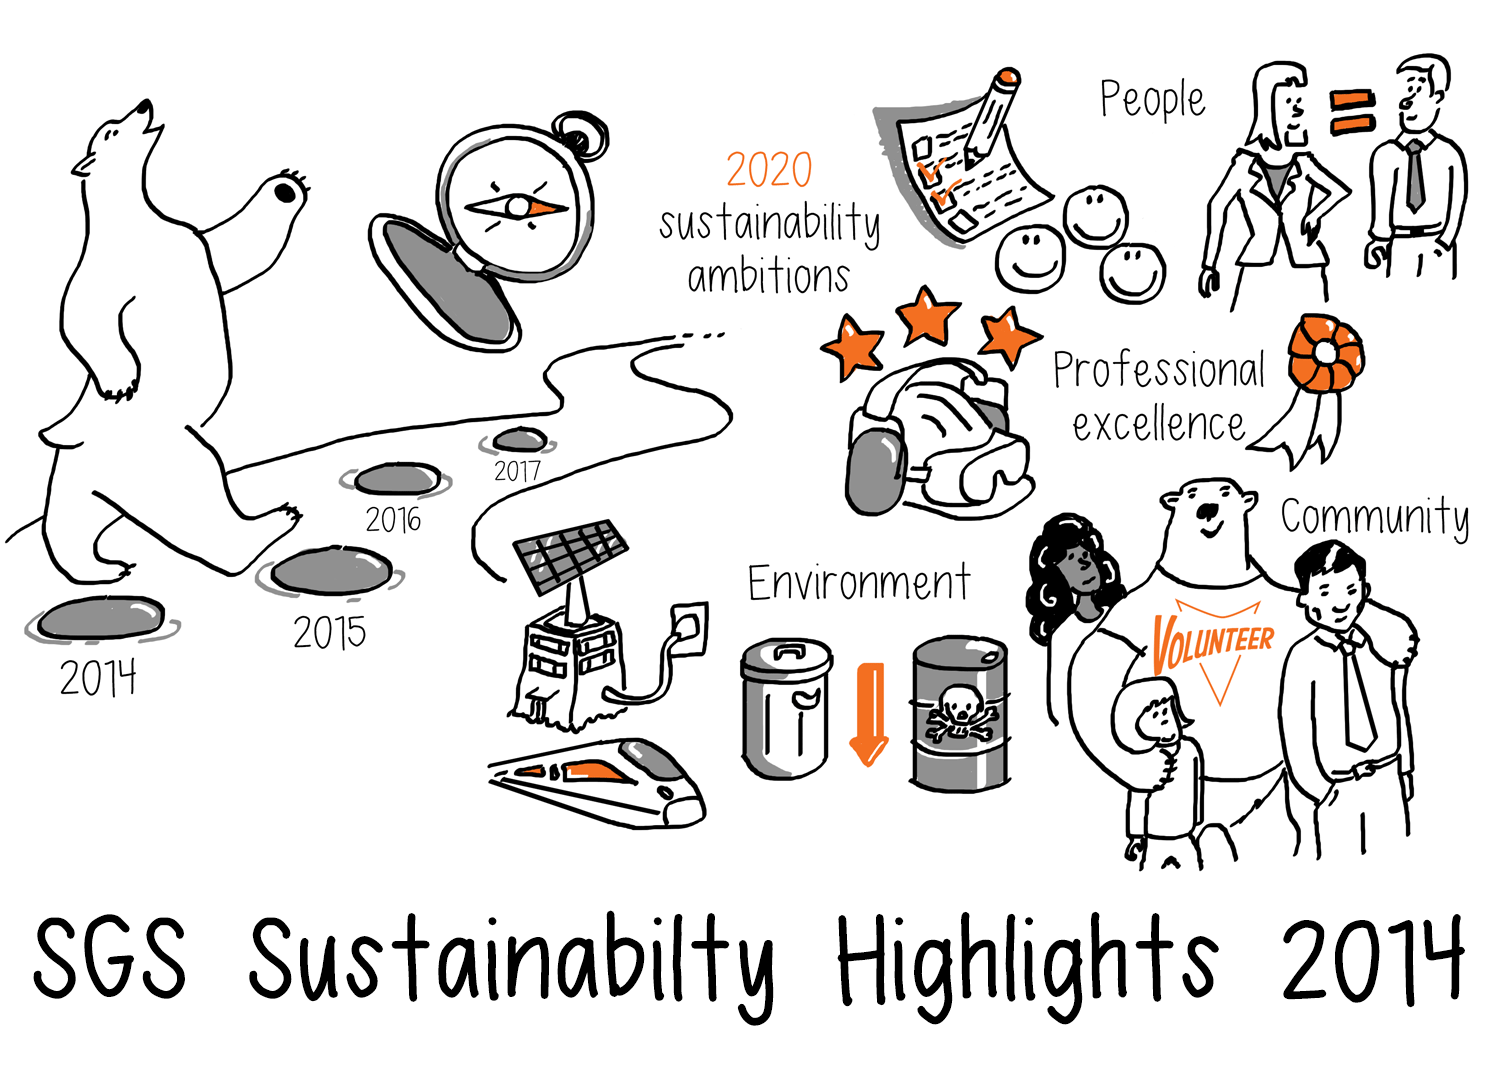 SGS Sustainability Highlights 2014 (animation video)